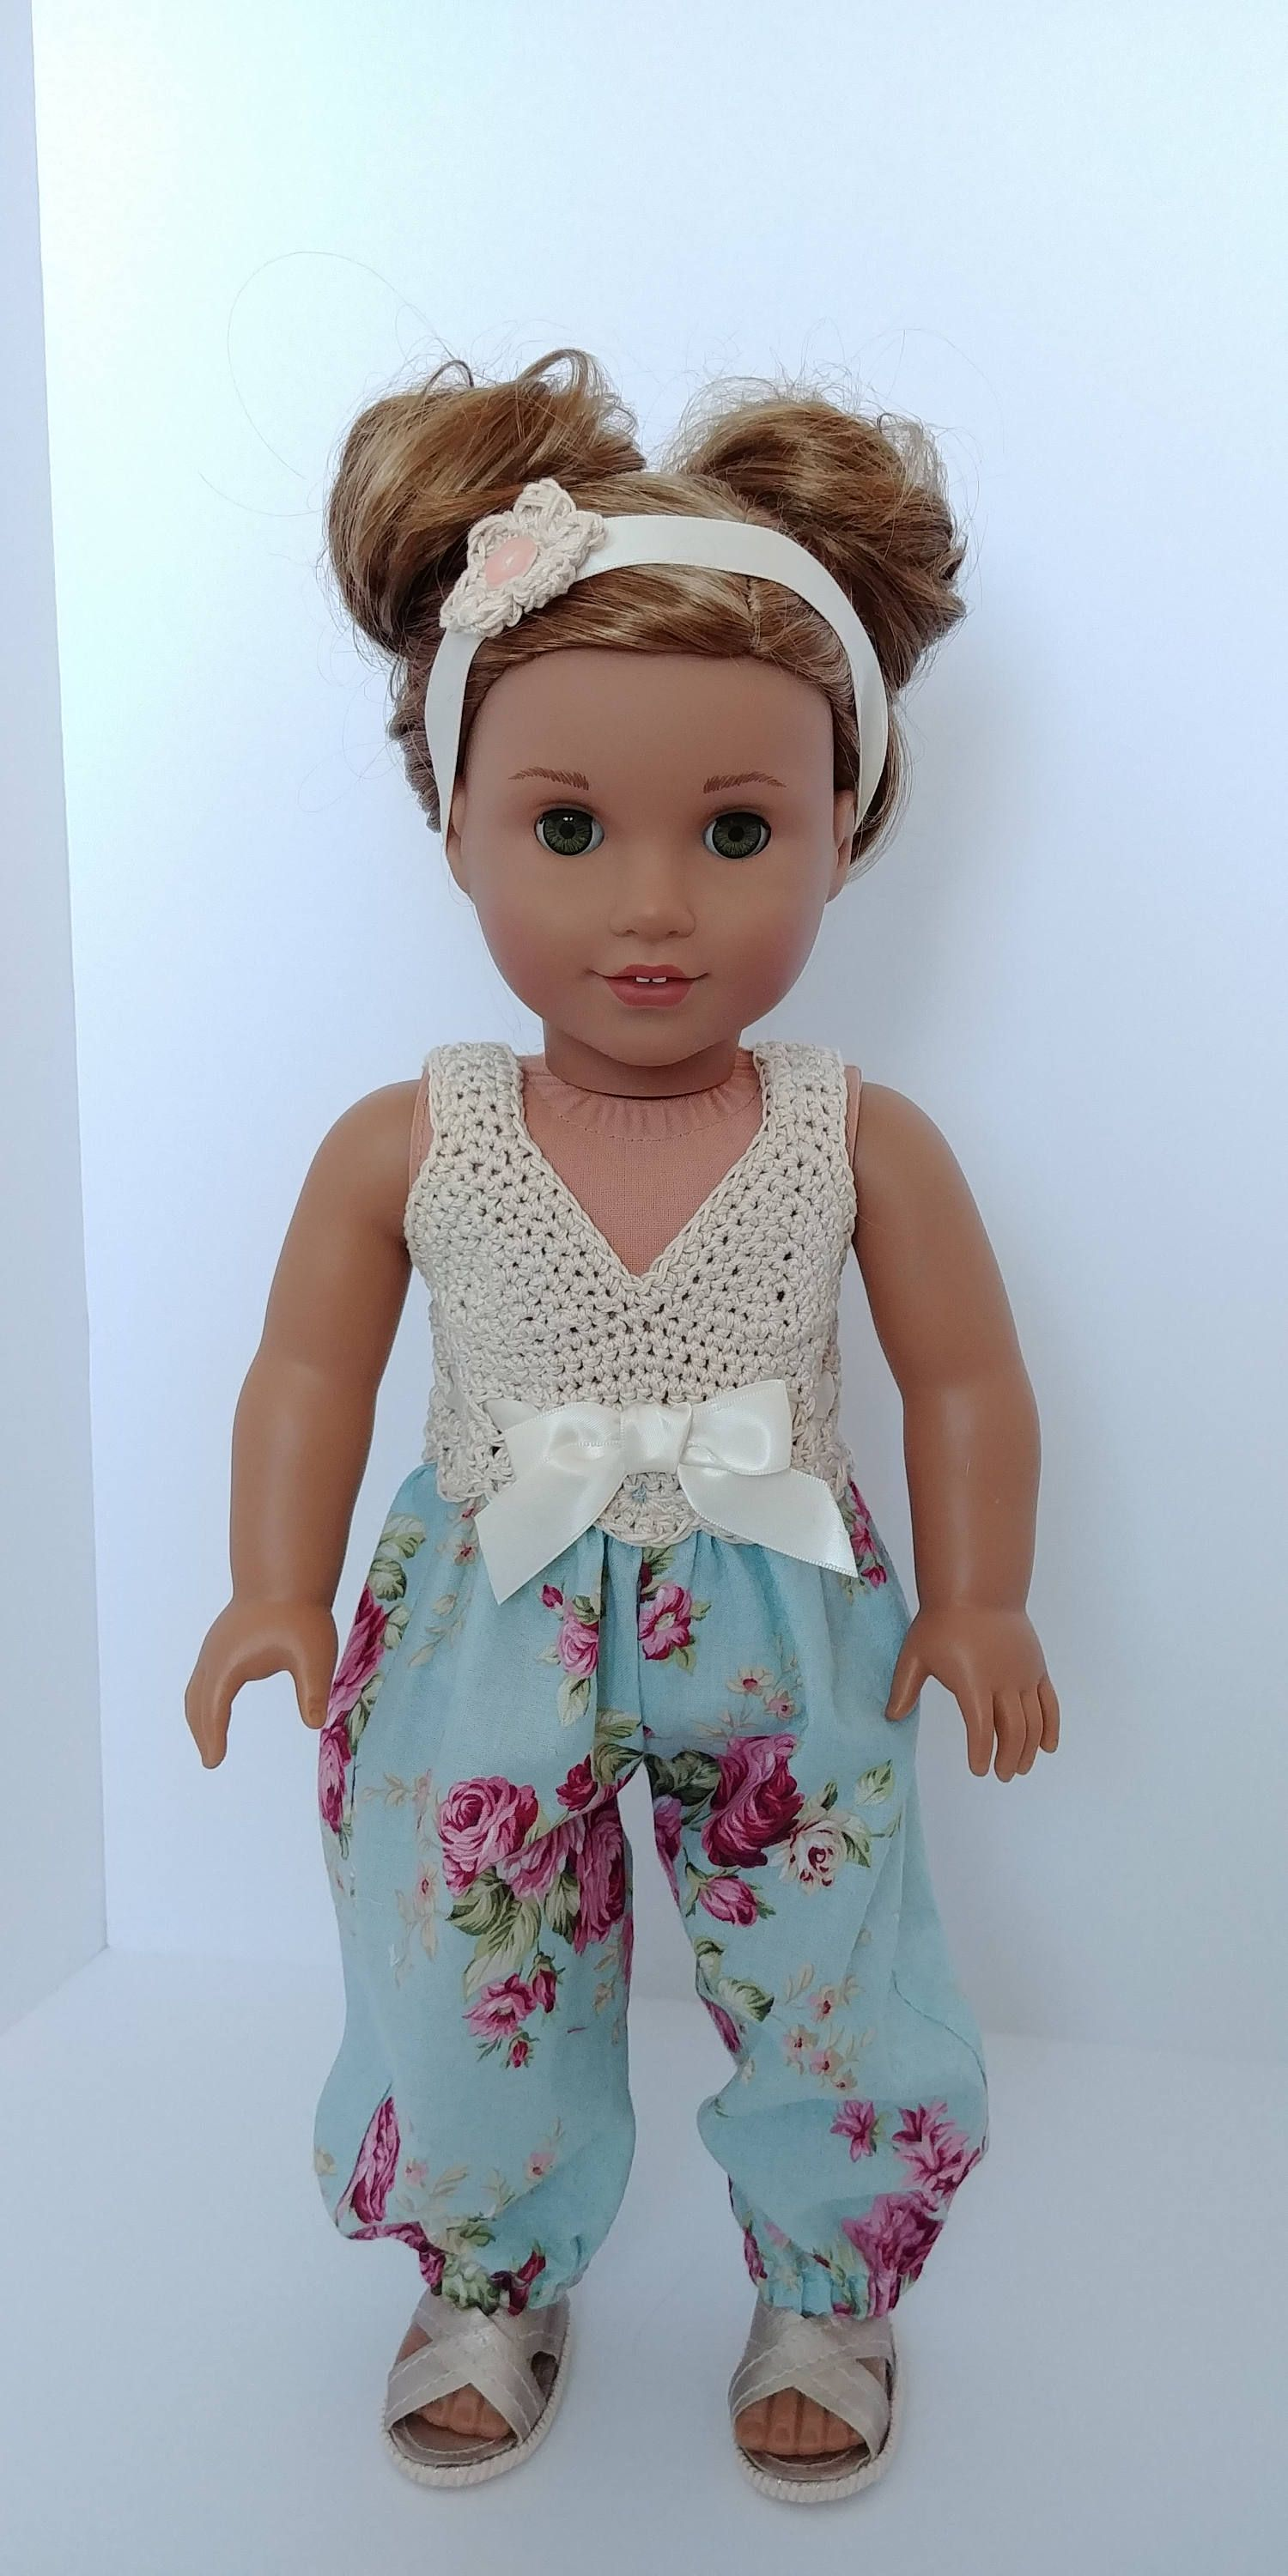 Doll Romper Jumpsuits Hairband Set For 18 inch AG American Doll Dolls Clothing